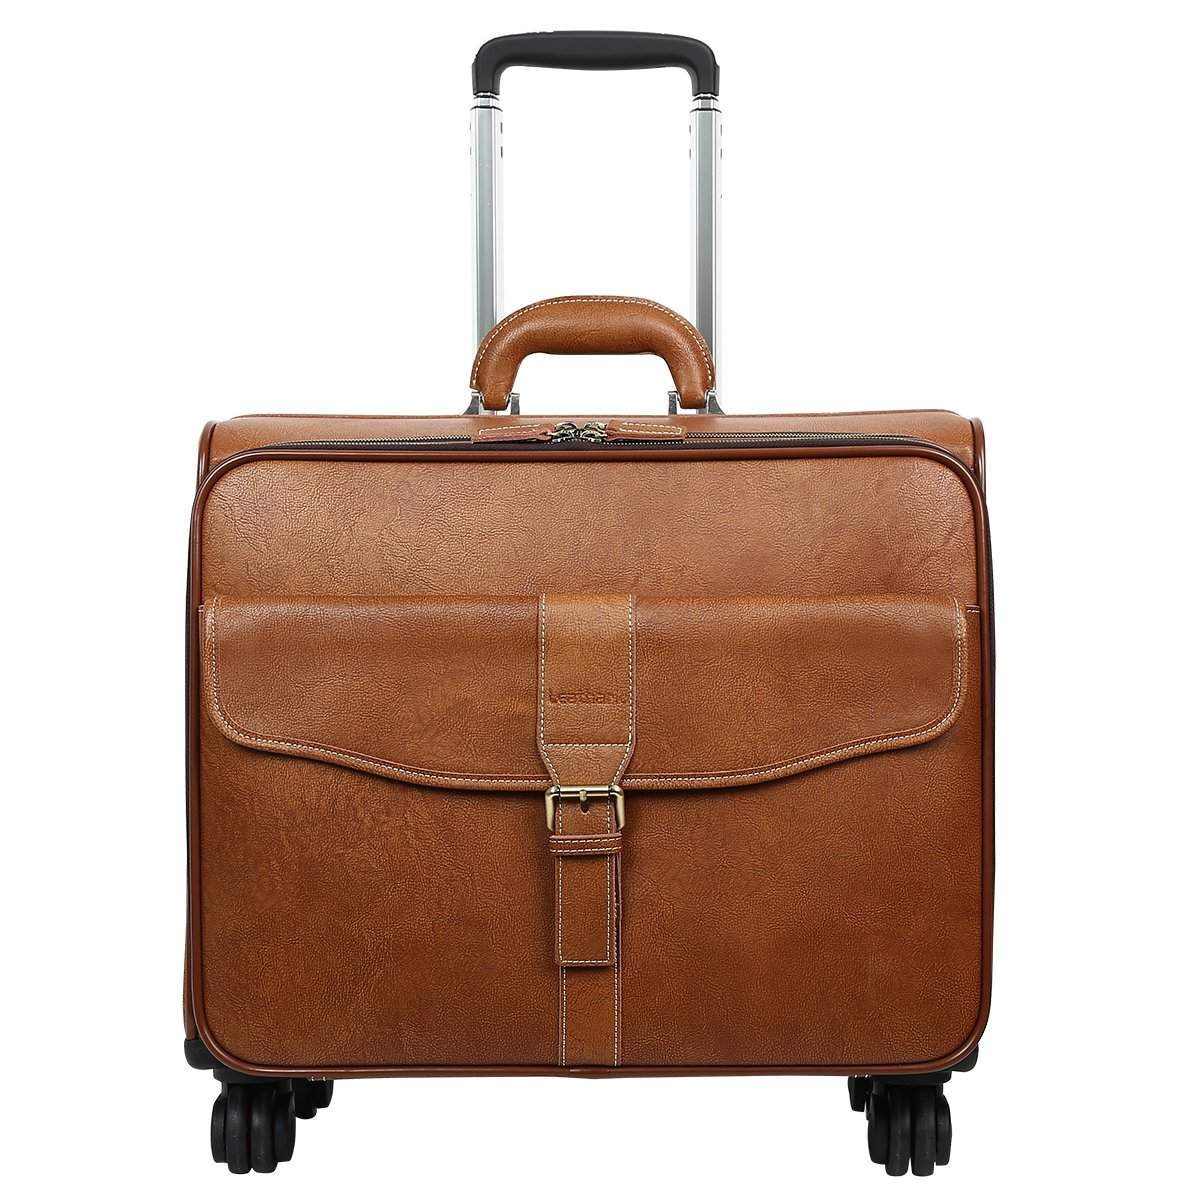 Leathario Leather Rolling Laptop Case Wheeled Briefcase Suitcase Roller Boarding Under Seat Case